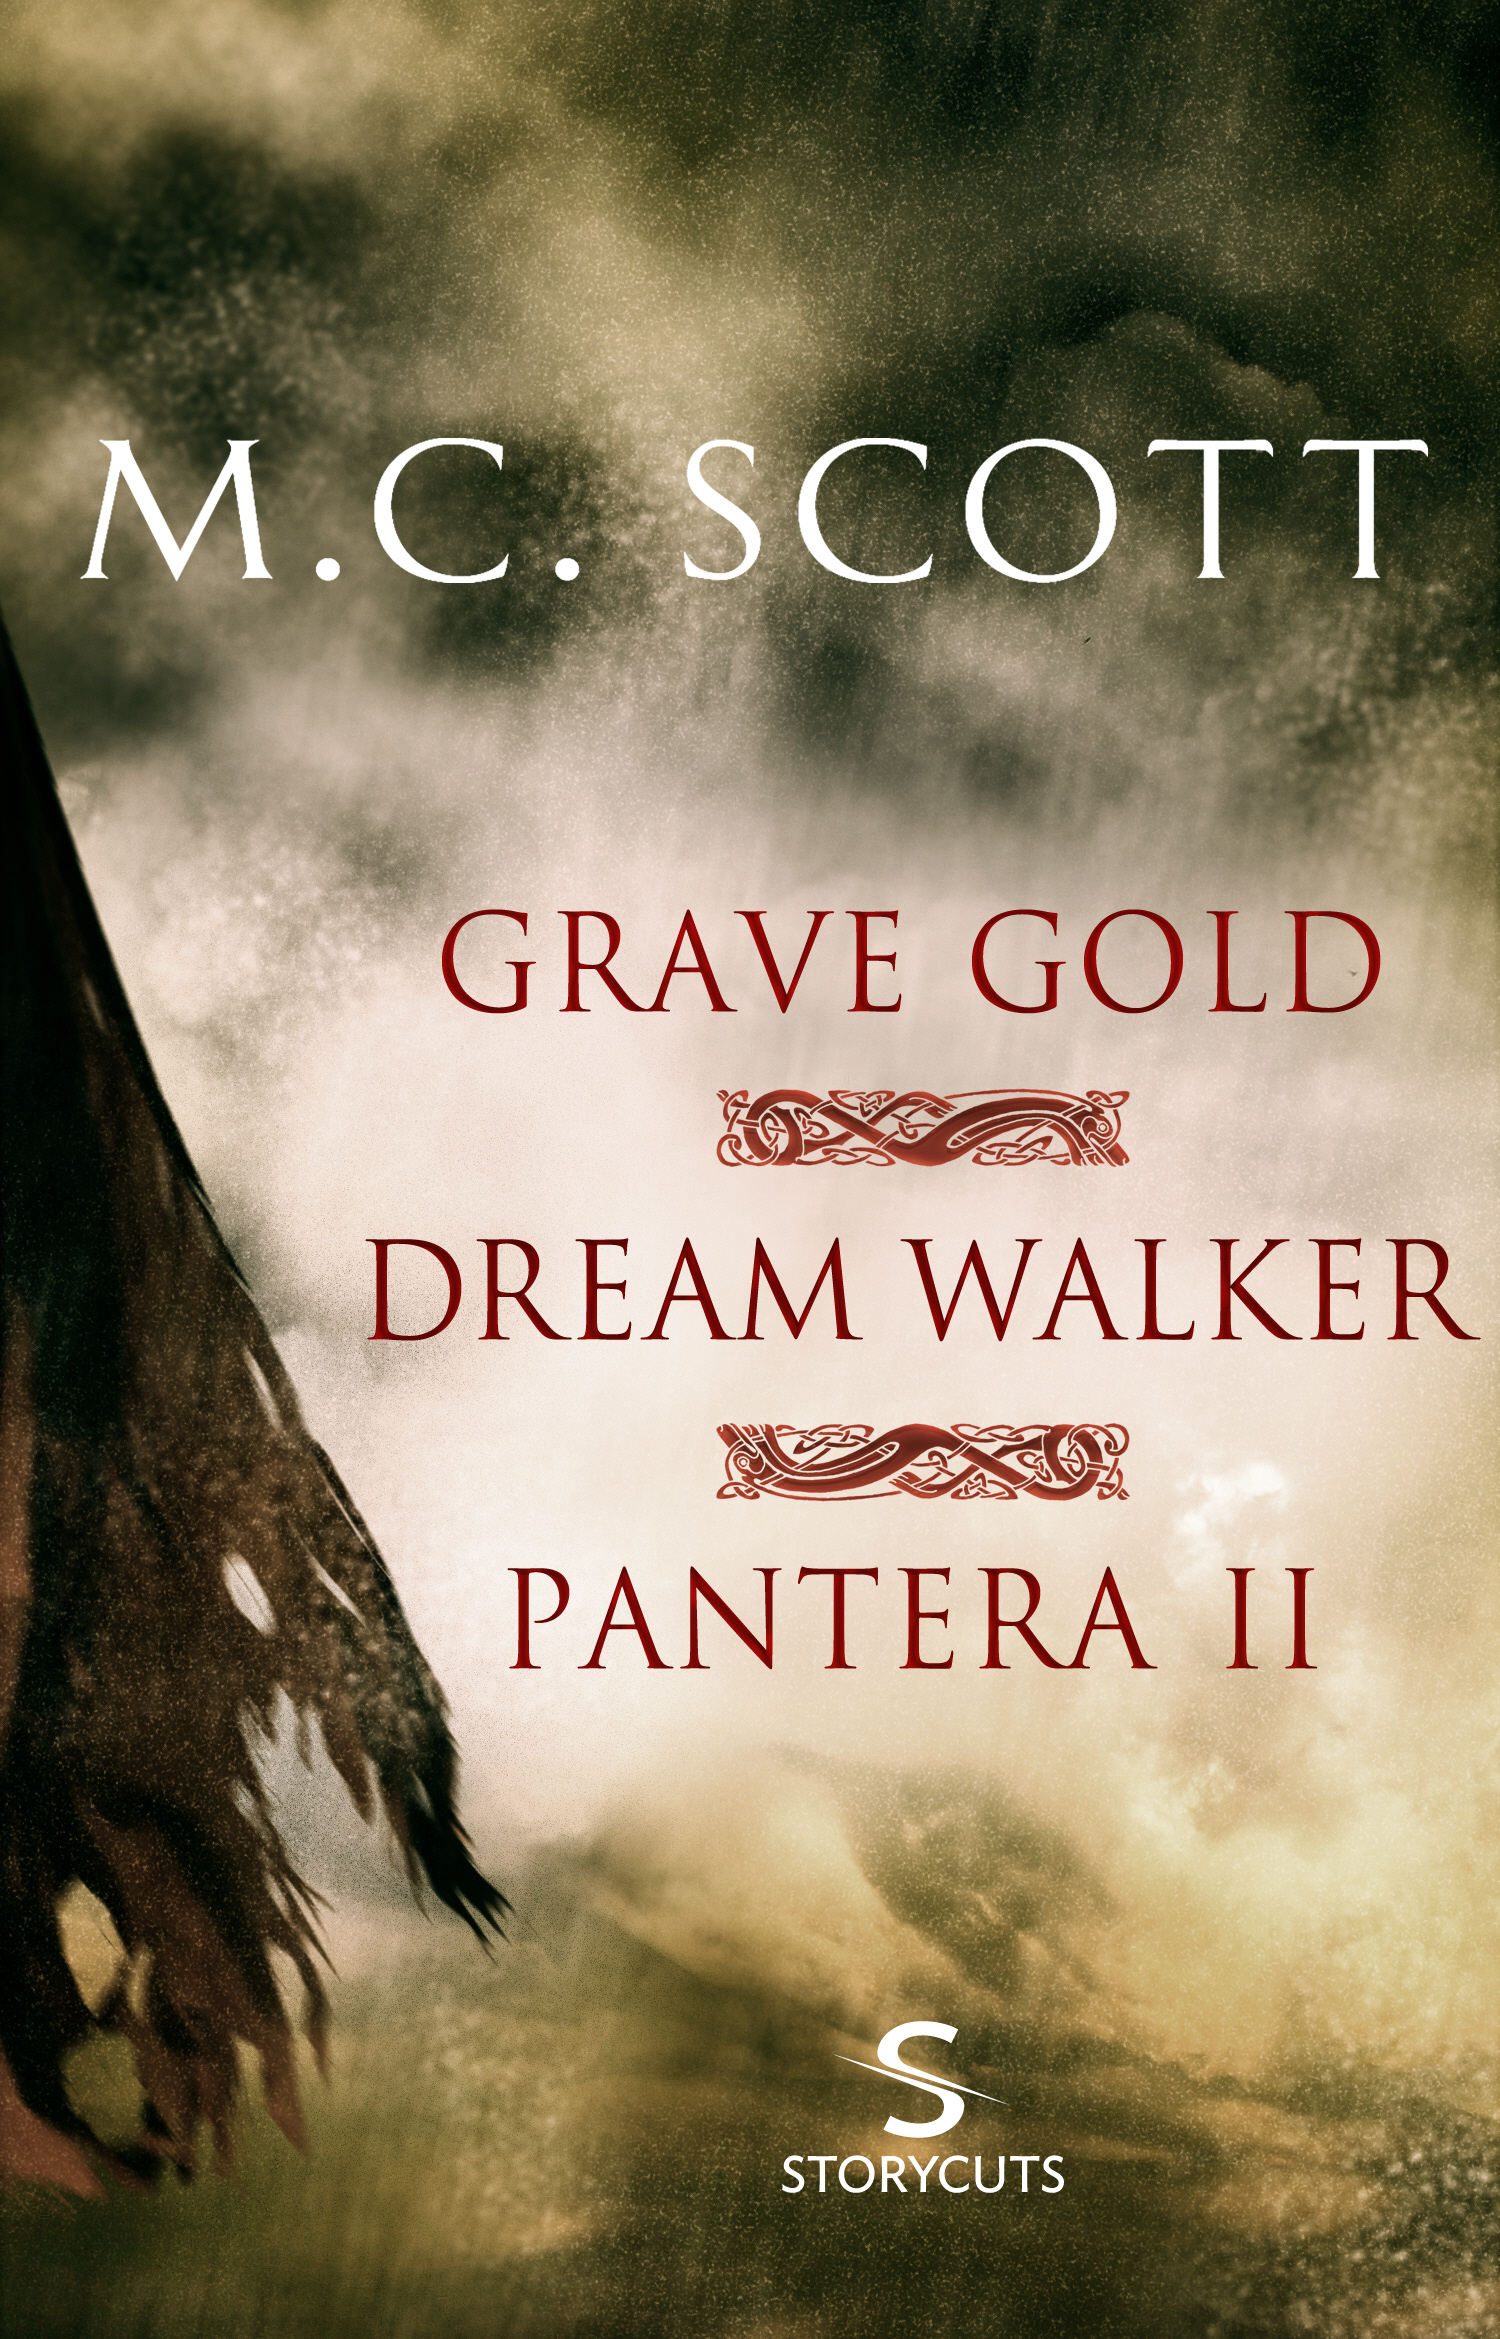 Grave Gold/Dream Walker/Pantera II (Storycuts) By: M C Scott